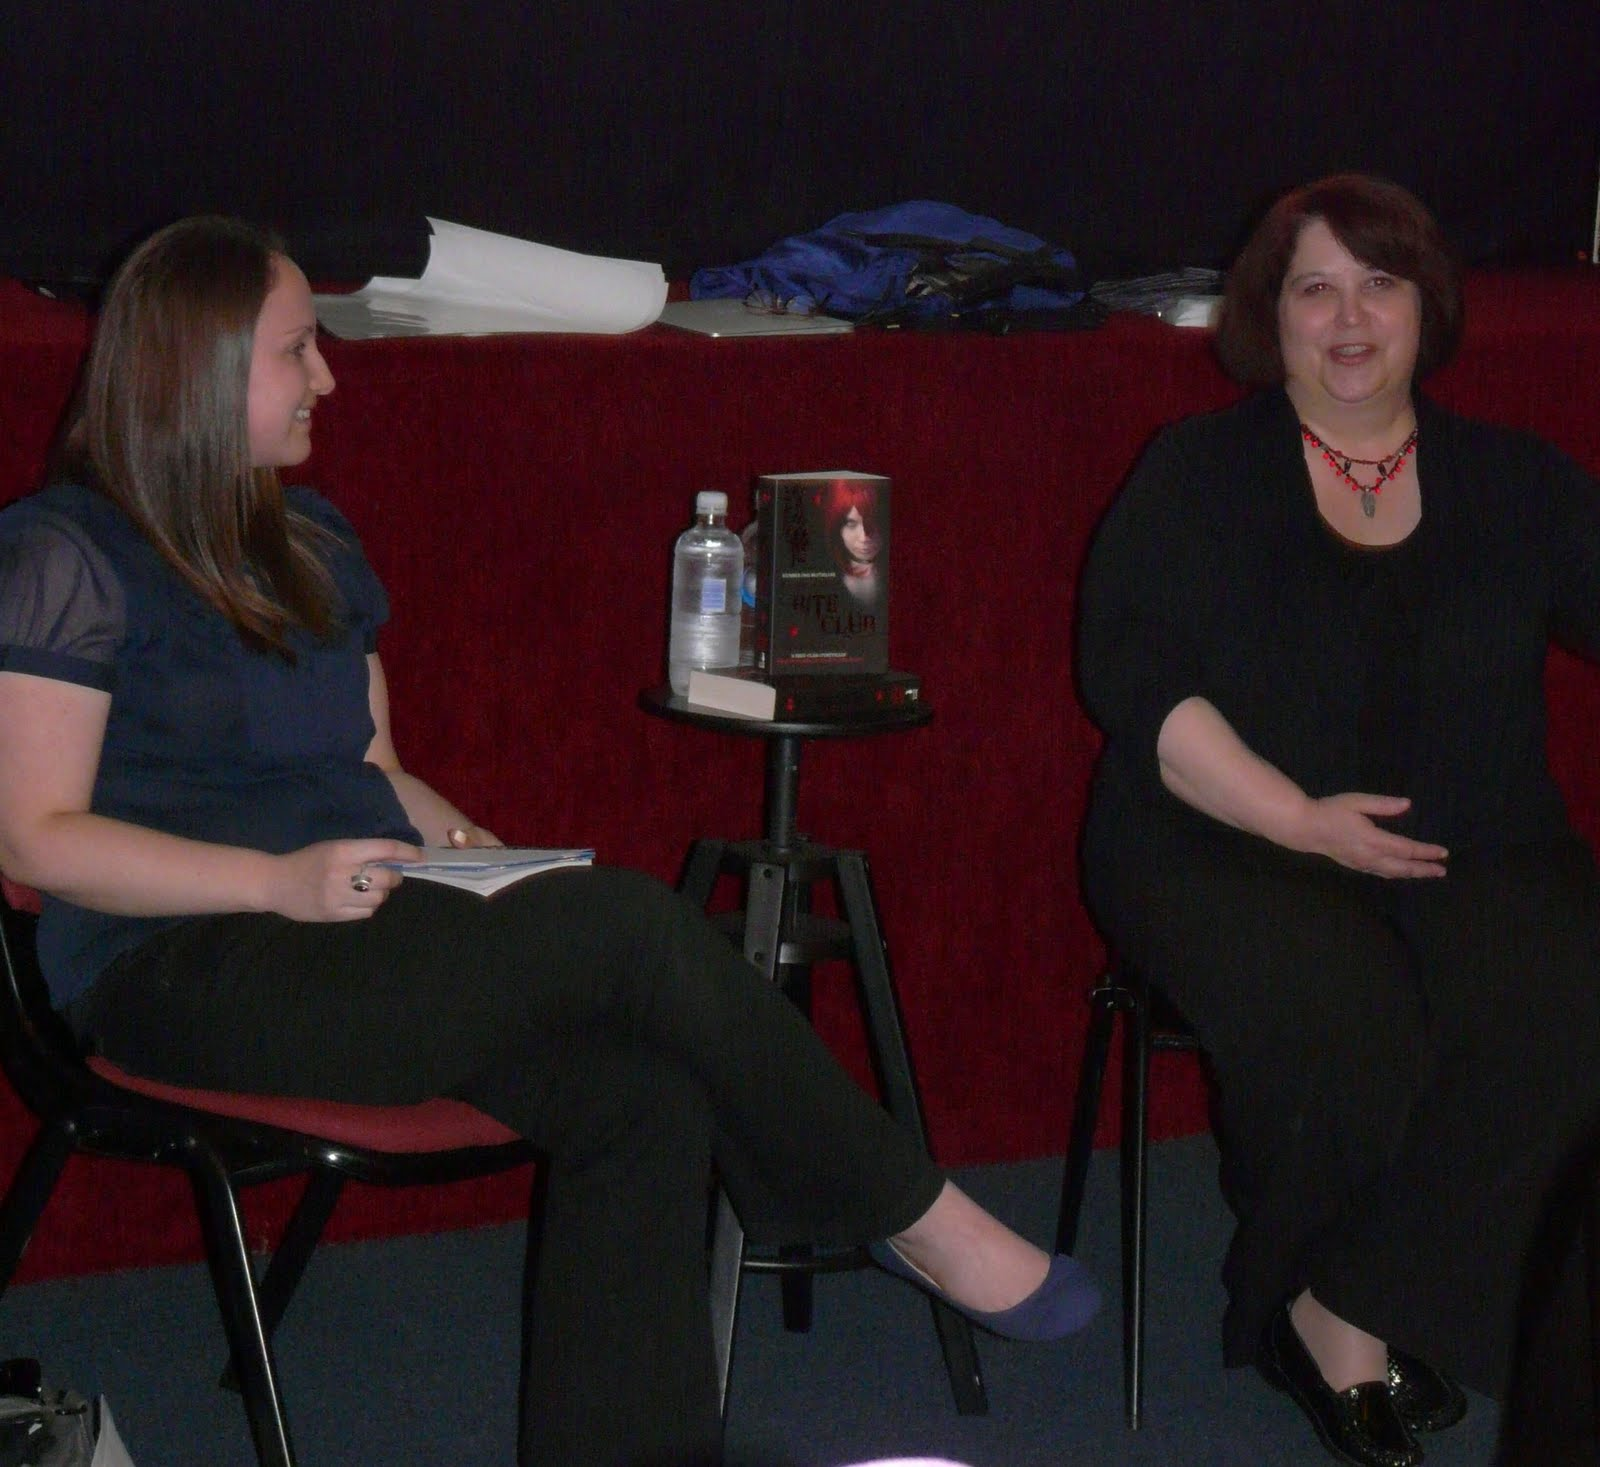 As Posted The Other Day, I Had The Chance To Meet And Interview Rachel  Caine As Part Of Her Bite Club Tour In Australia, To Celebrate The Release  Of Her